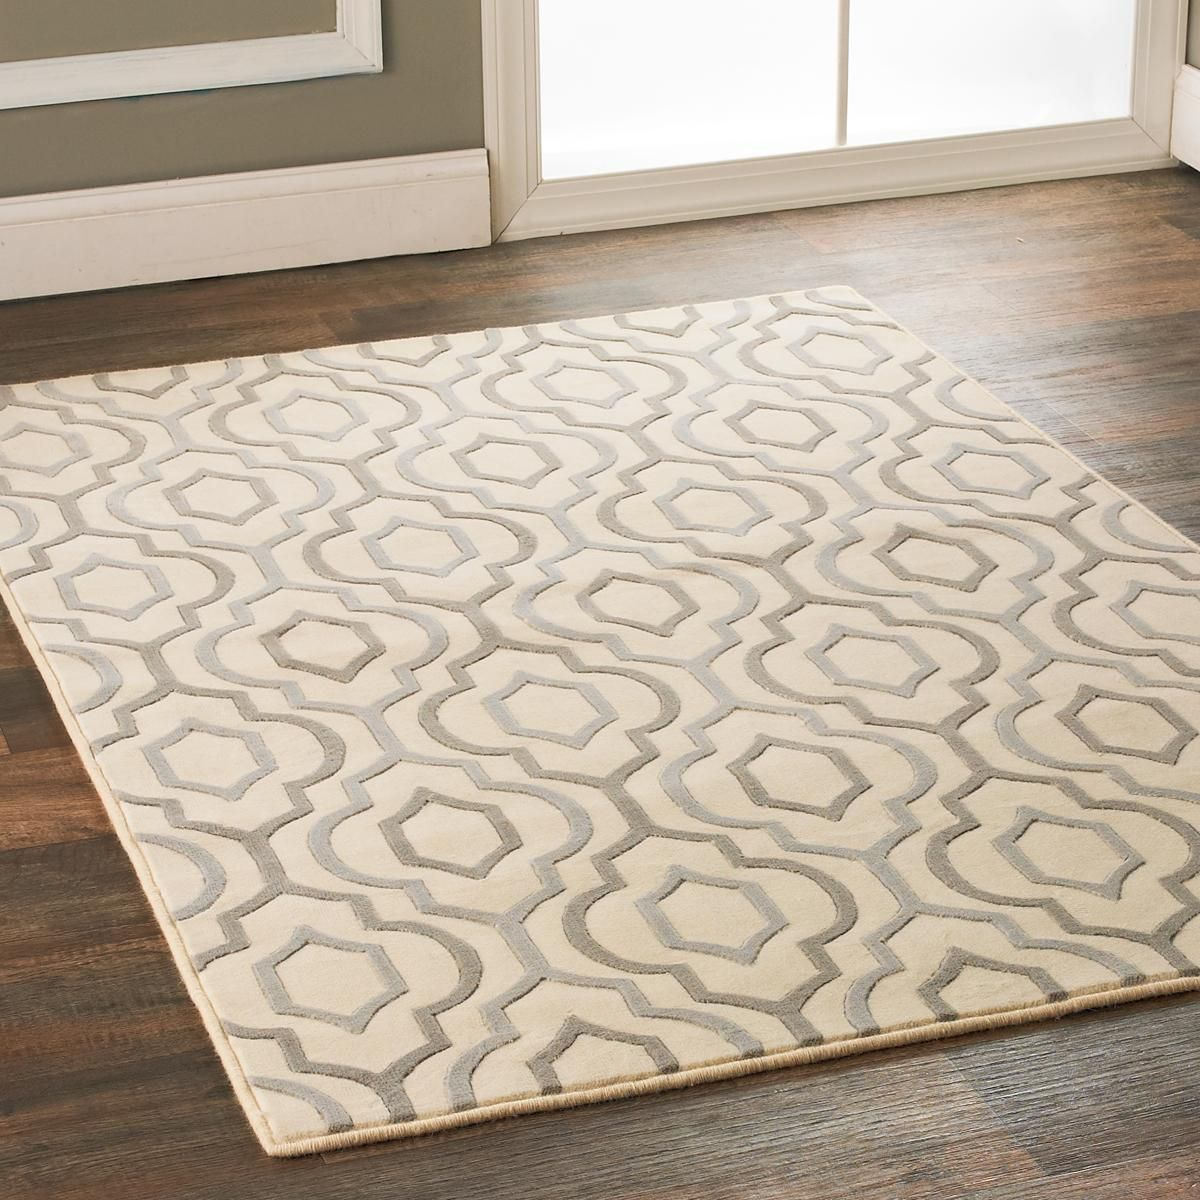 Arabesque Diamonds Area Rug